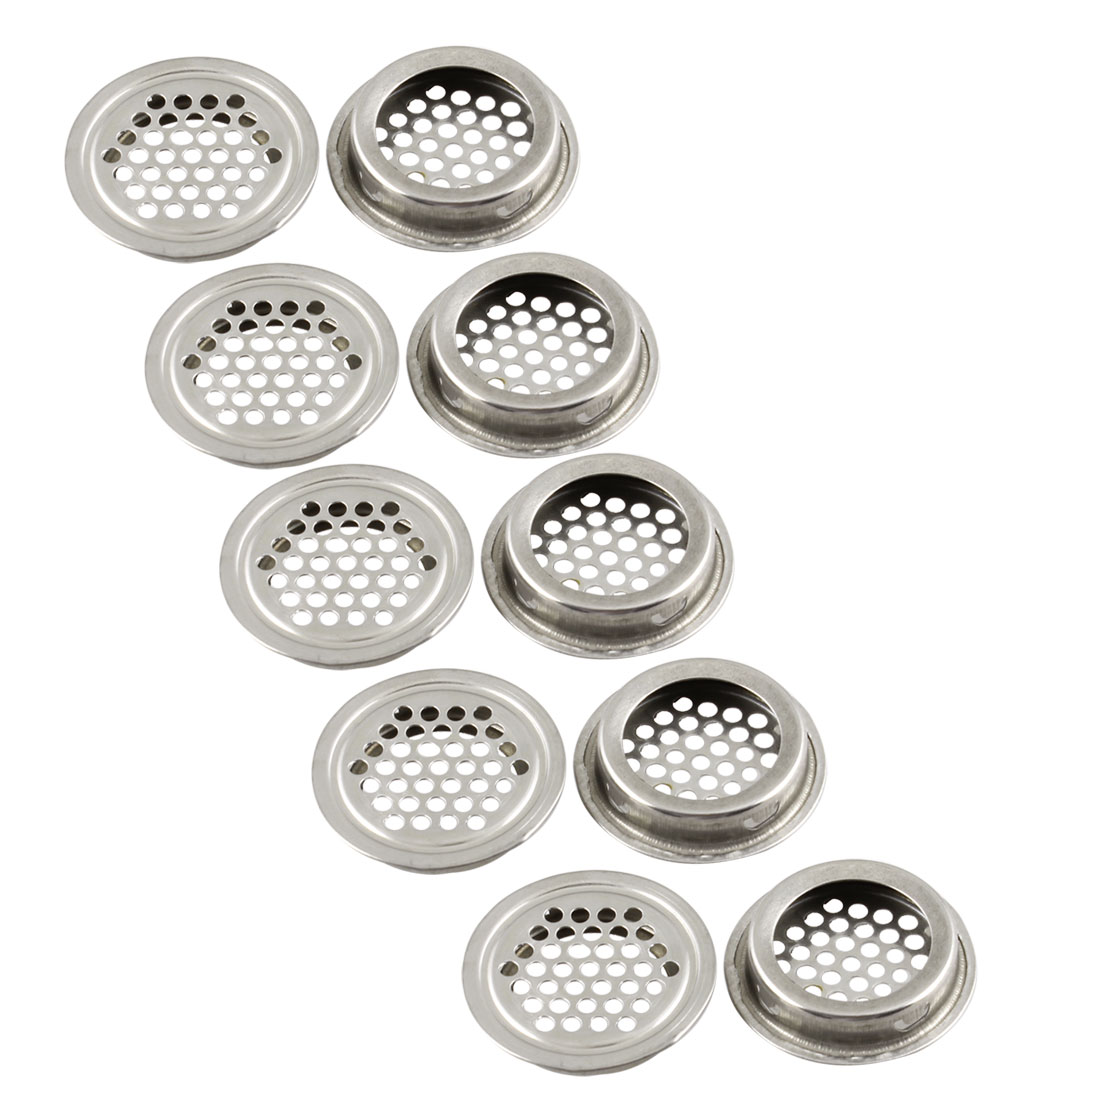 10 Pcs 43mm Diameter Hardware Stainless Steel Round Air Vent Louver